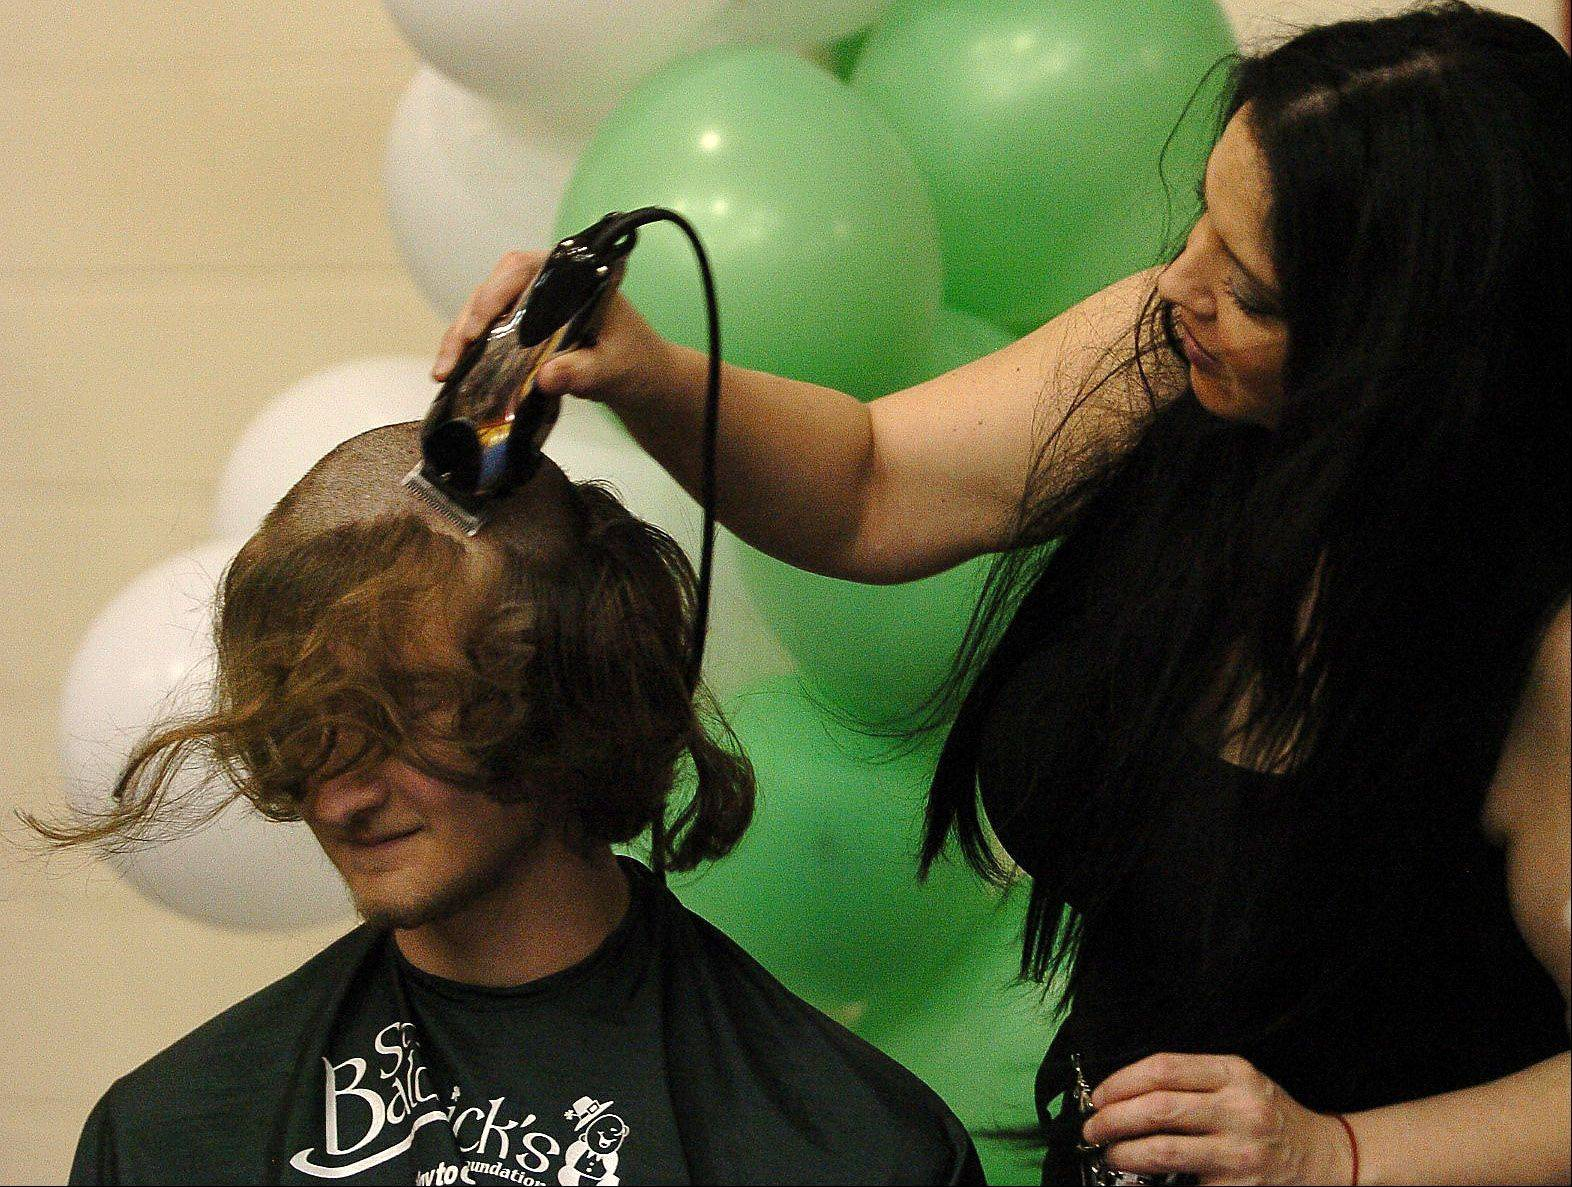 Justin Pacocha gets his head shaved by Laura Quintero of Sport Clips during the St. Baldrick's head shaving event at Schaumburg High School.